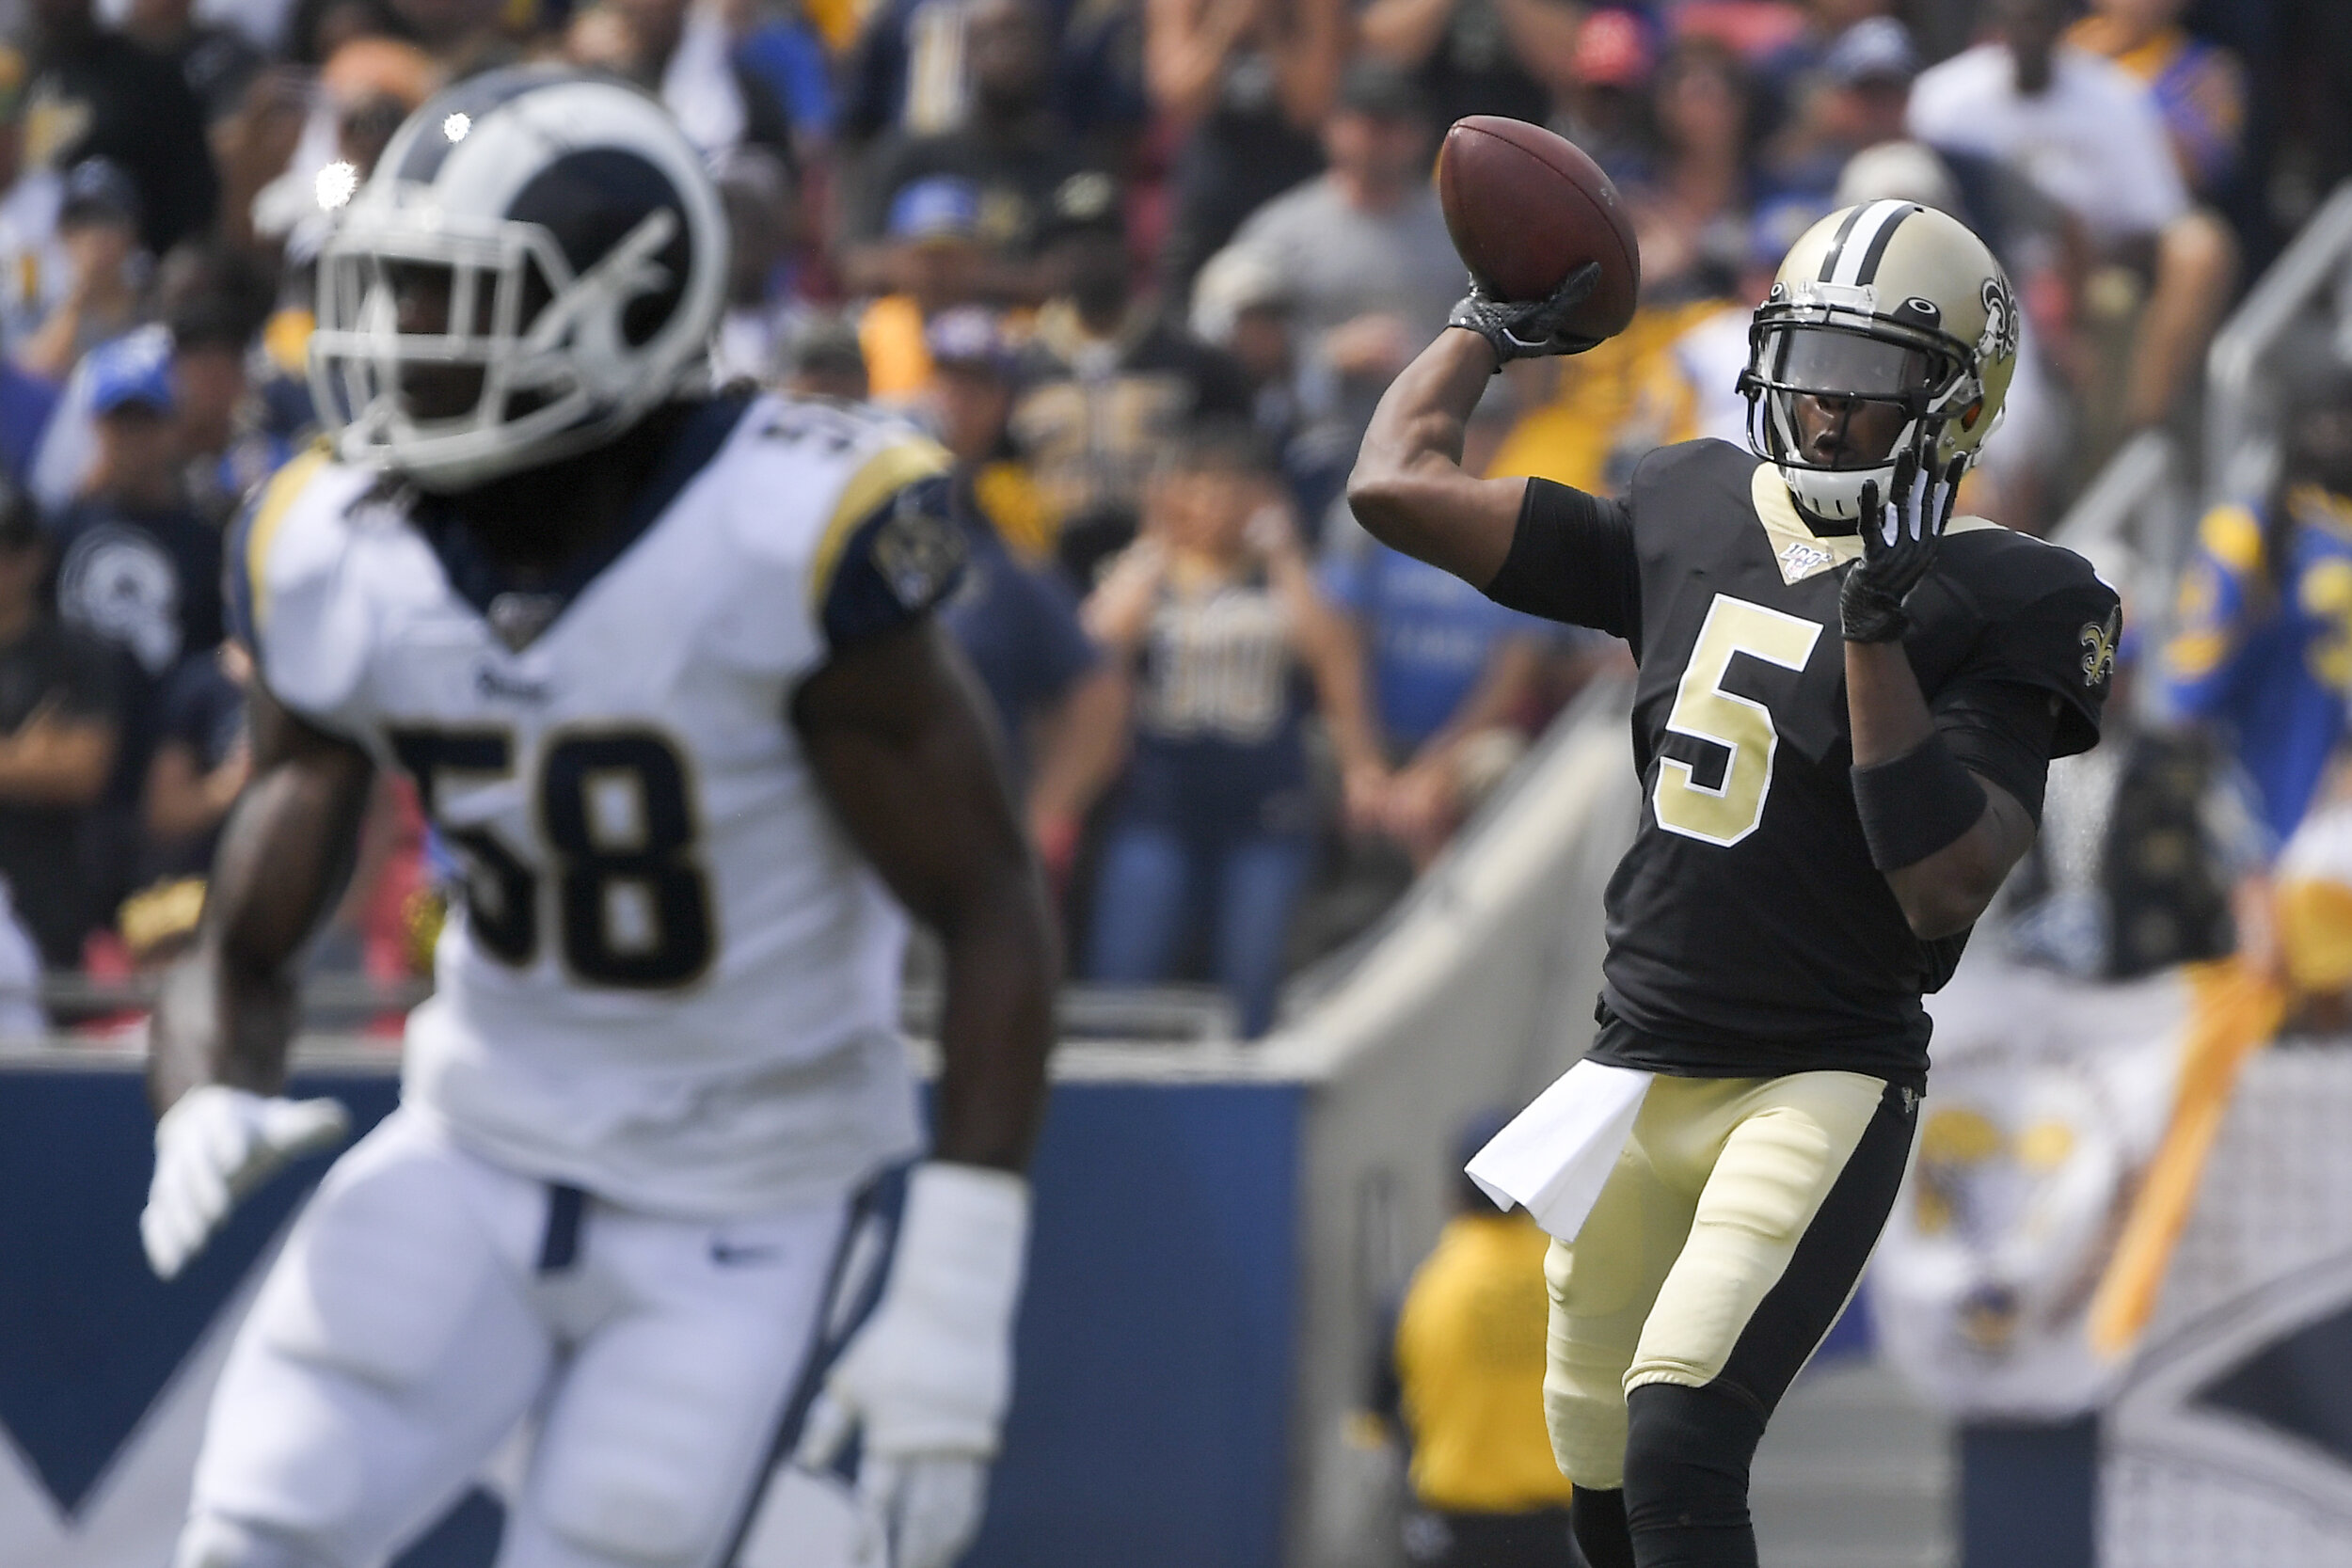 Teddy Bridgewater entered the game after Brees went down, ending the game with 165 yards thrown.  Photo by The Associated Press.